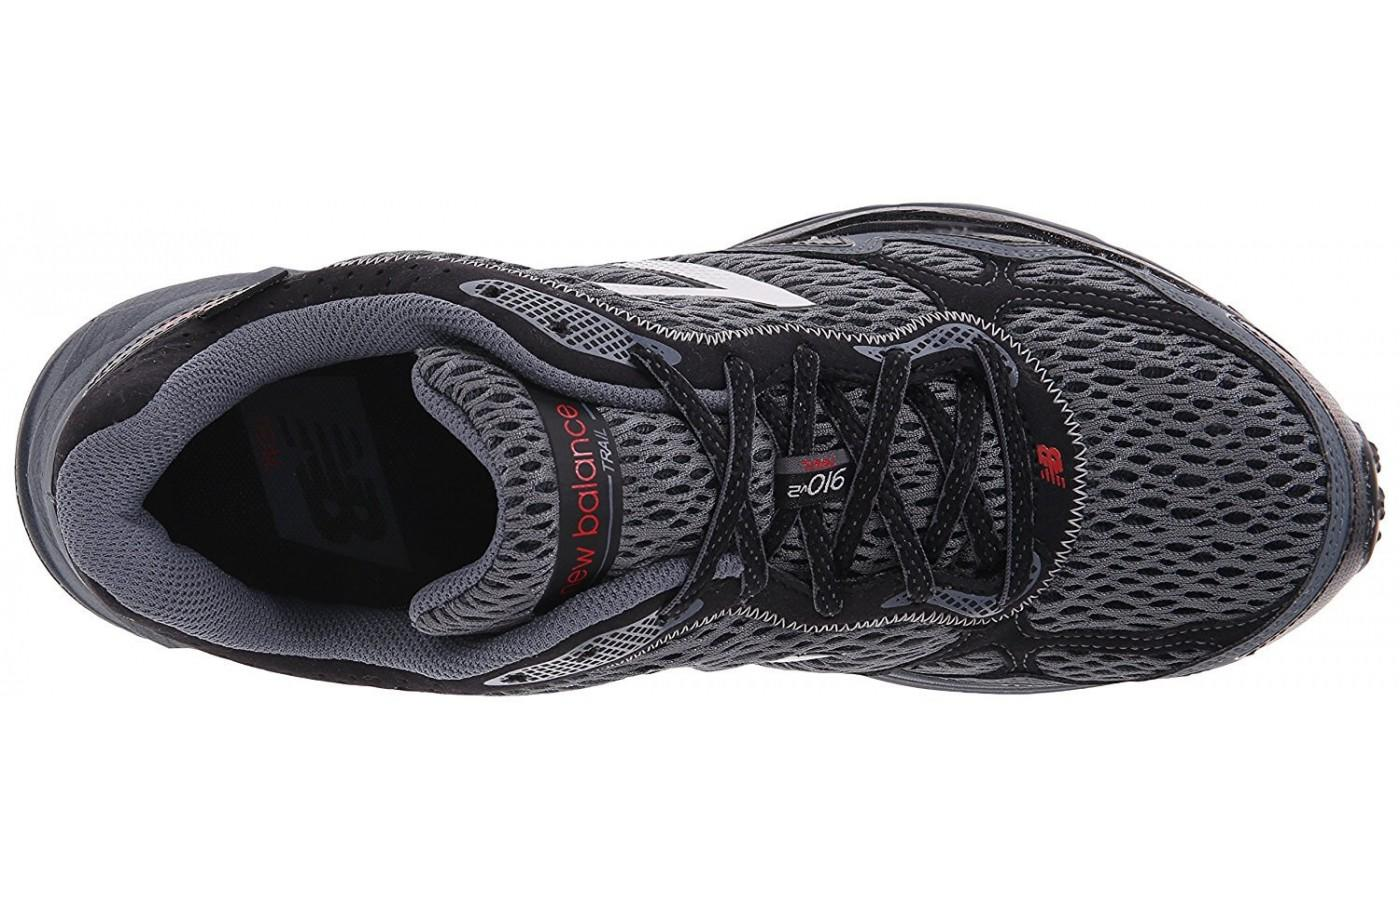 The Synthetic mesh upper is much more breathable than the previous version